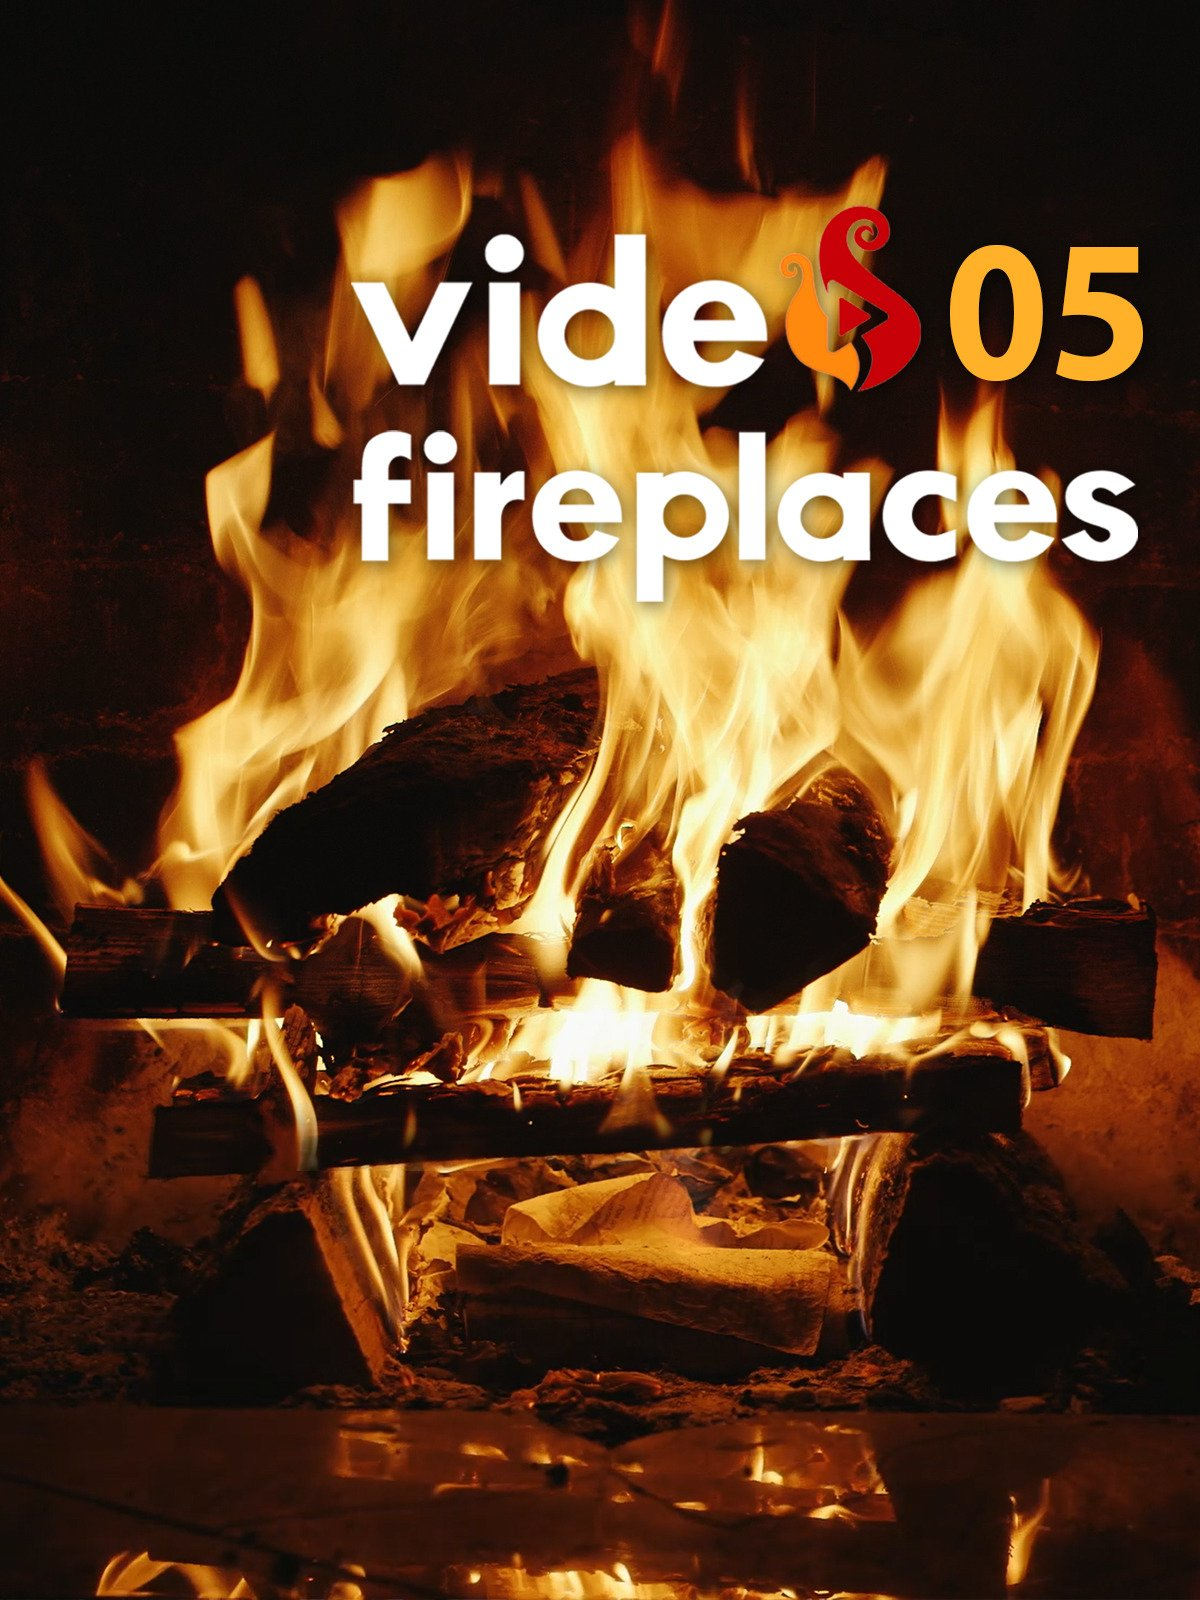 Video Fireplace 05